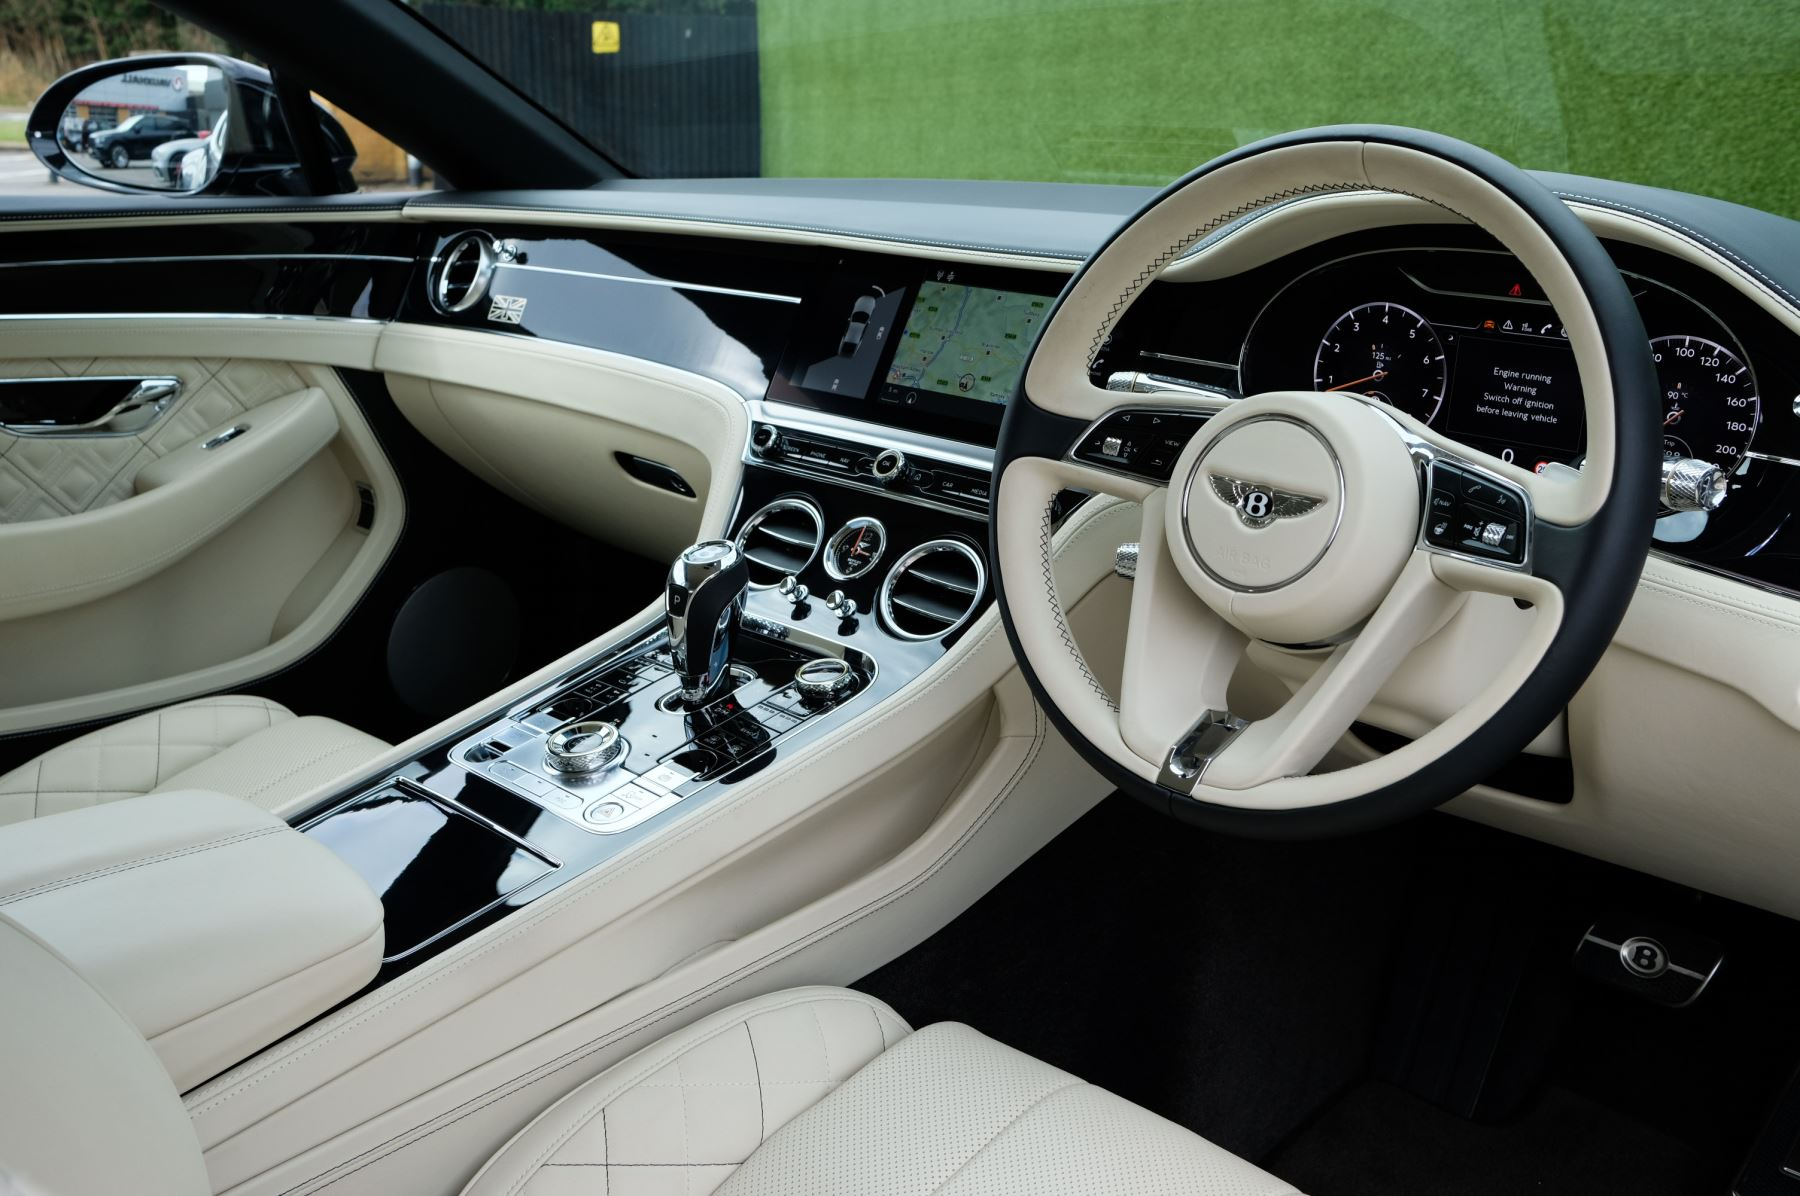 Bentley Continental GT 6.0 W12 1st Edition - Comfort Seating - Touring Specification image 13